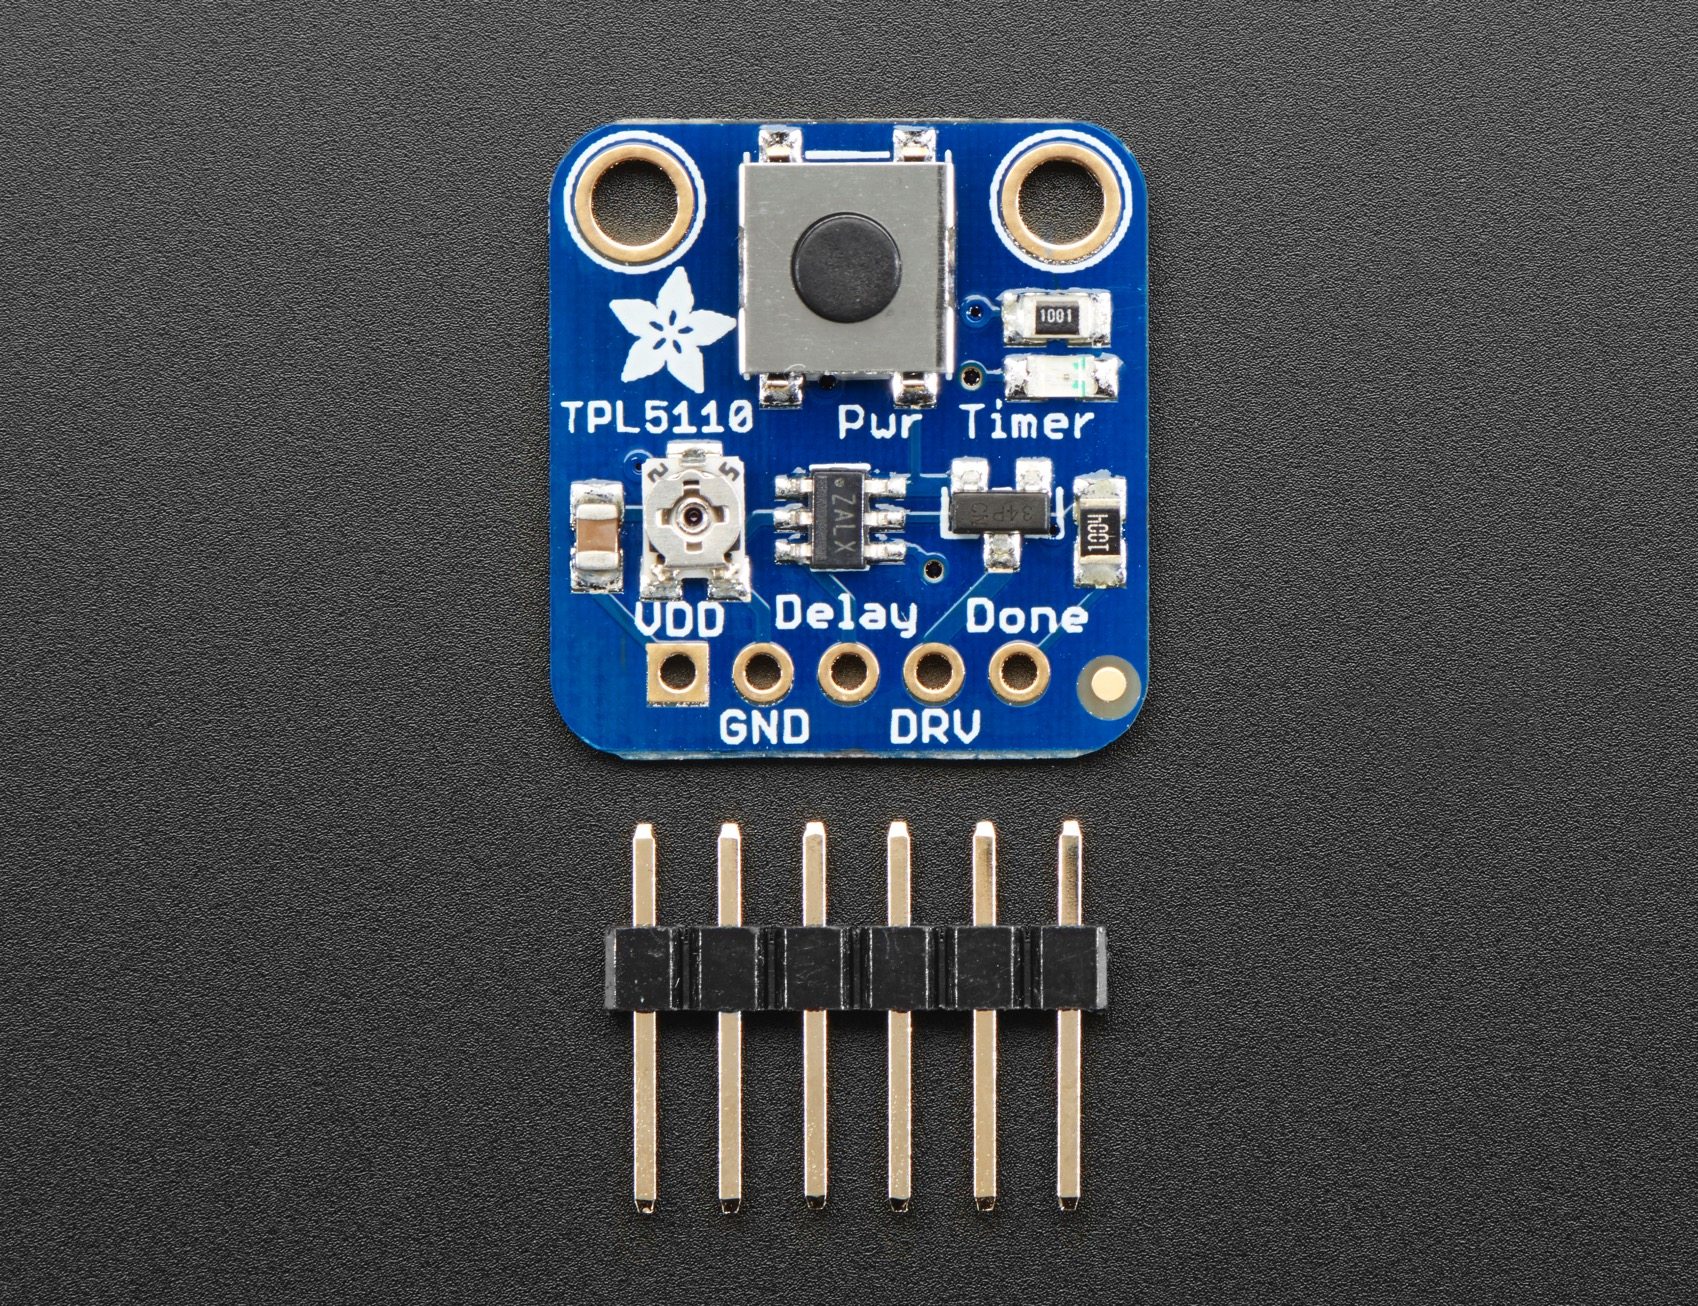 Circuitplaygroundexpress Makecode Adafruit Msmakecode A New Guide The Gregorian Calendar Circuit Yes Thats Right This Is Digitally Addressable Type Of Led Strip You Can Set Color Each Leds Red Green And Blue Component With 8 Bit Pwm